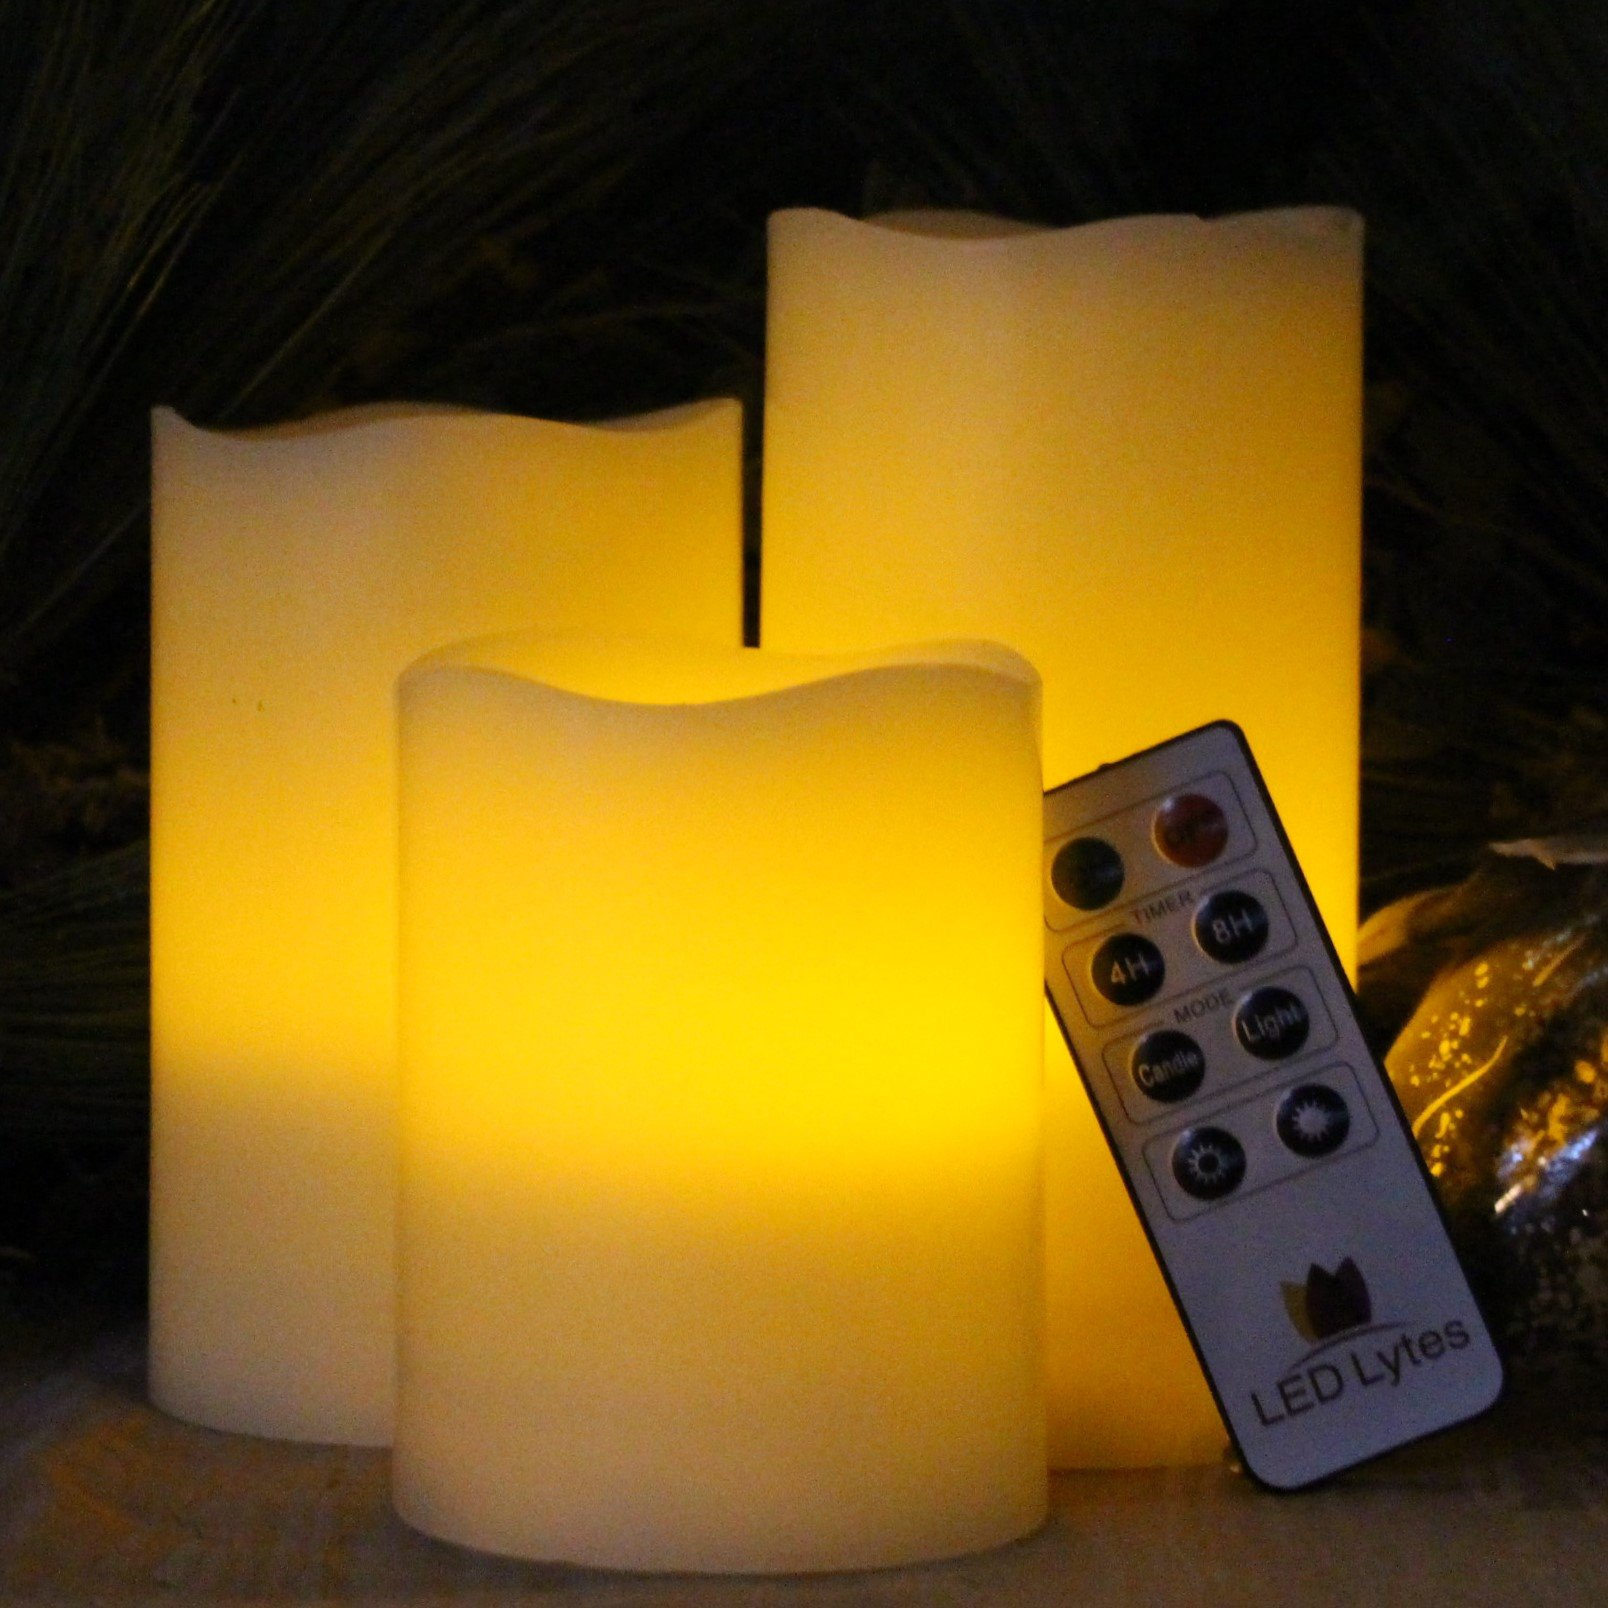 LED Lytes Flickering Flameless Candles - Set of 3 Ivory Wax Flickering Amber Yellow Flame, Auto-Off Timer Remote Control Fake Battery Operated Candles by LED Lytes (Image #5)